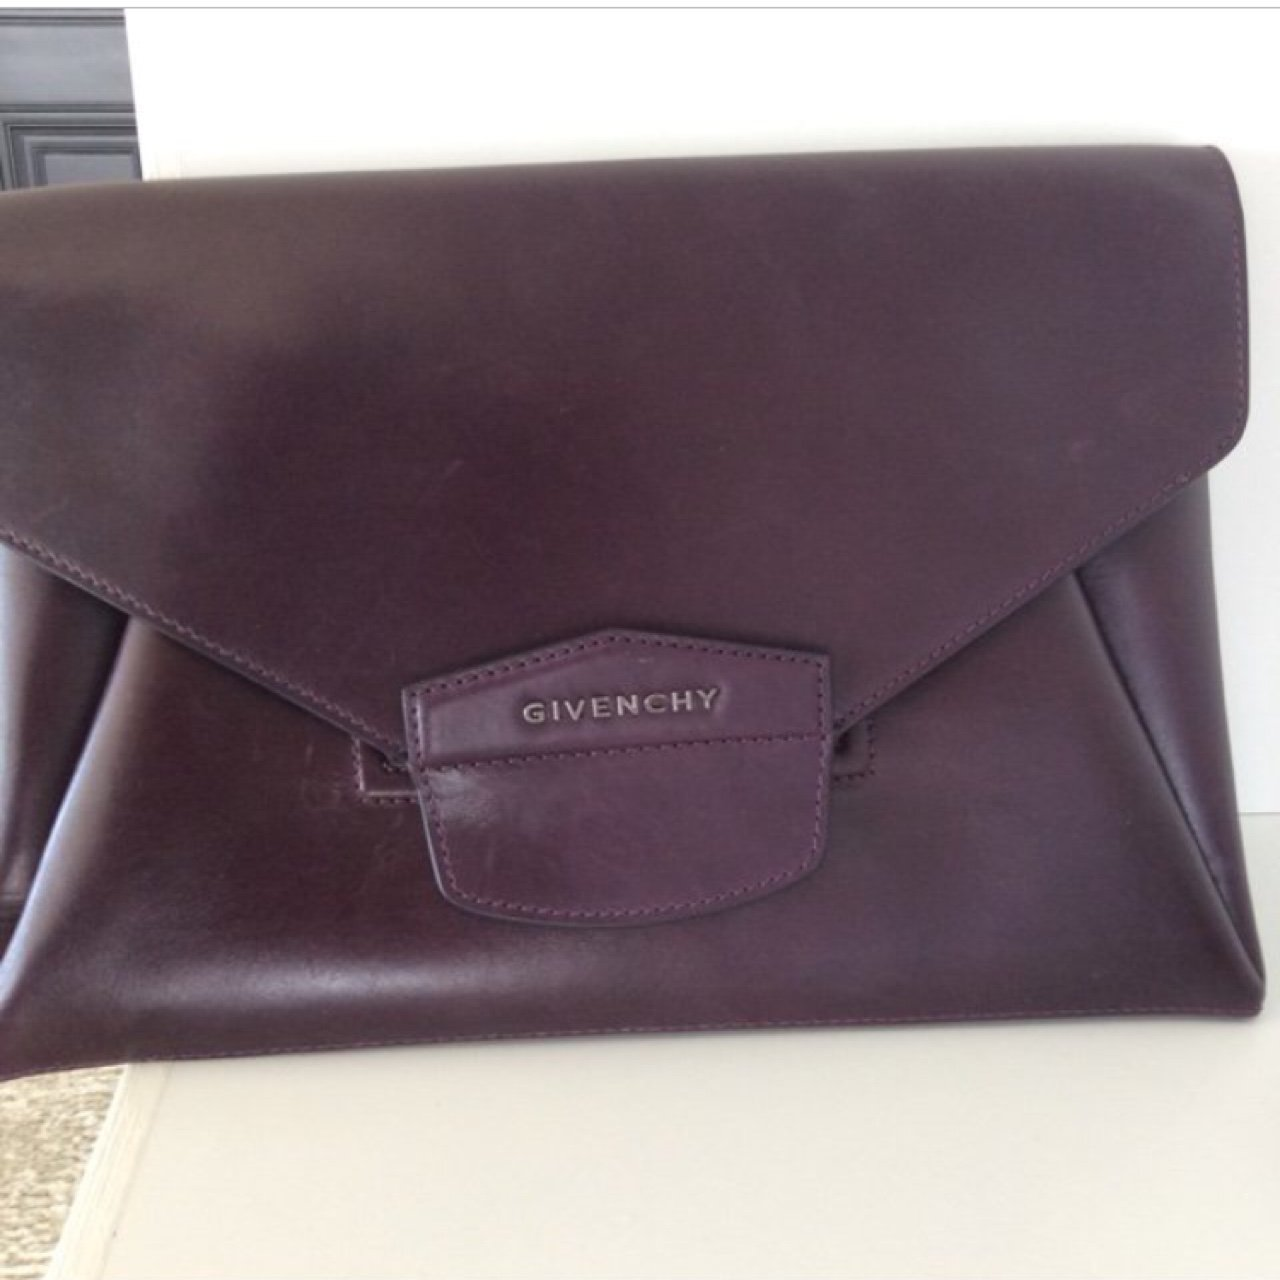 Repop givenchy clutch  bag  borsa antigona real genuine dark - Depop 1adfa93d33d26